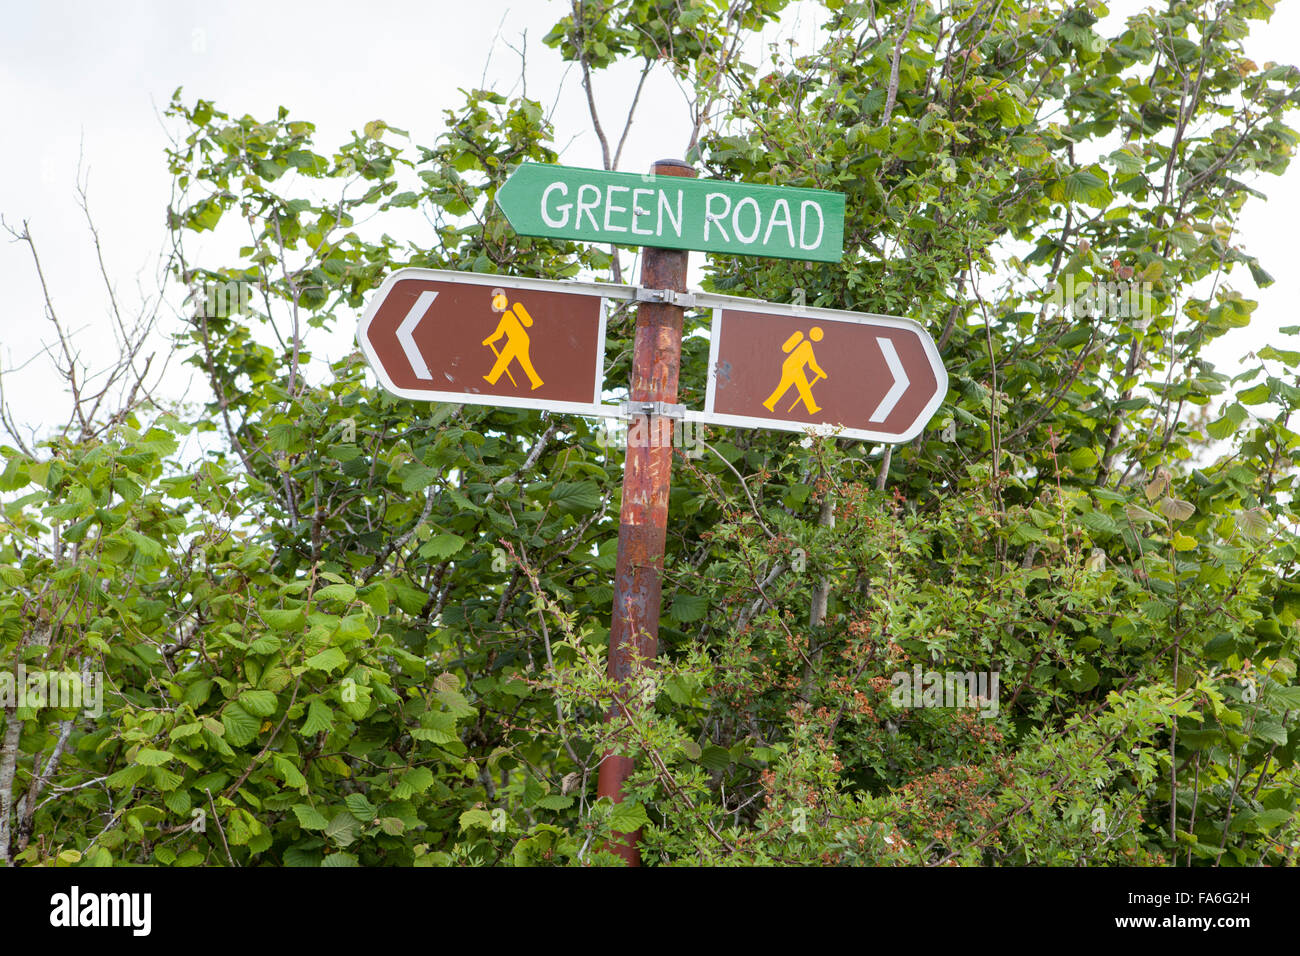 The Green Road at Mullaghmore Crossroads - the Burren, Ireland - Stock Image